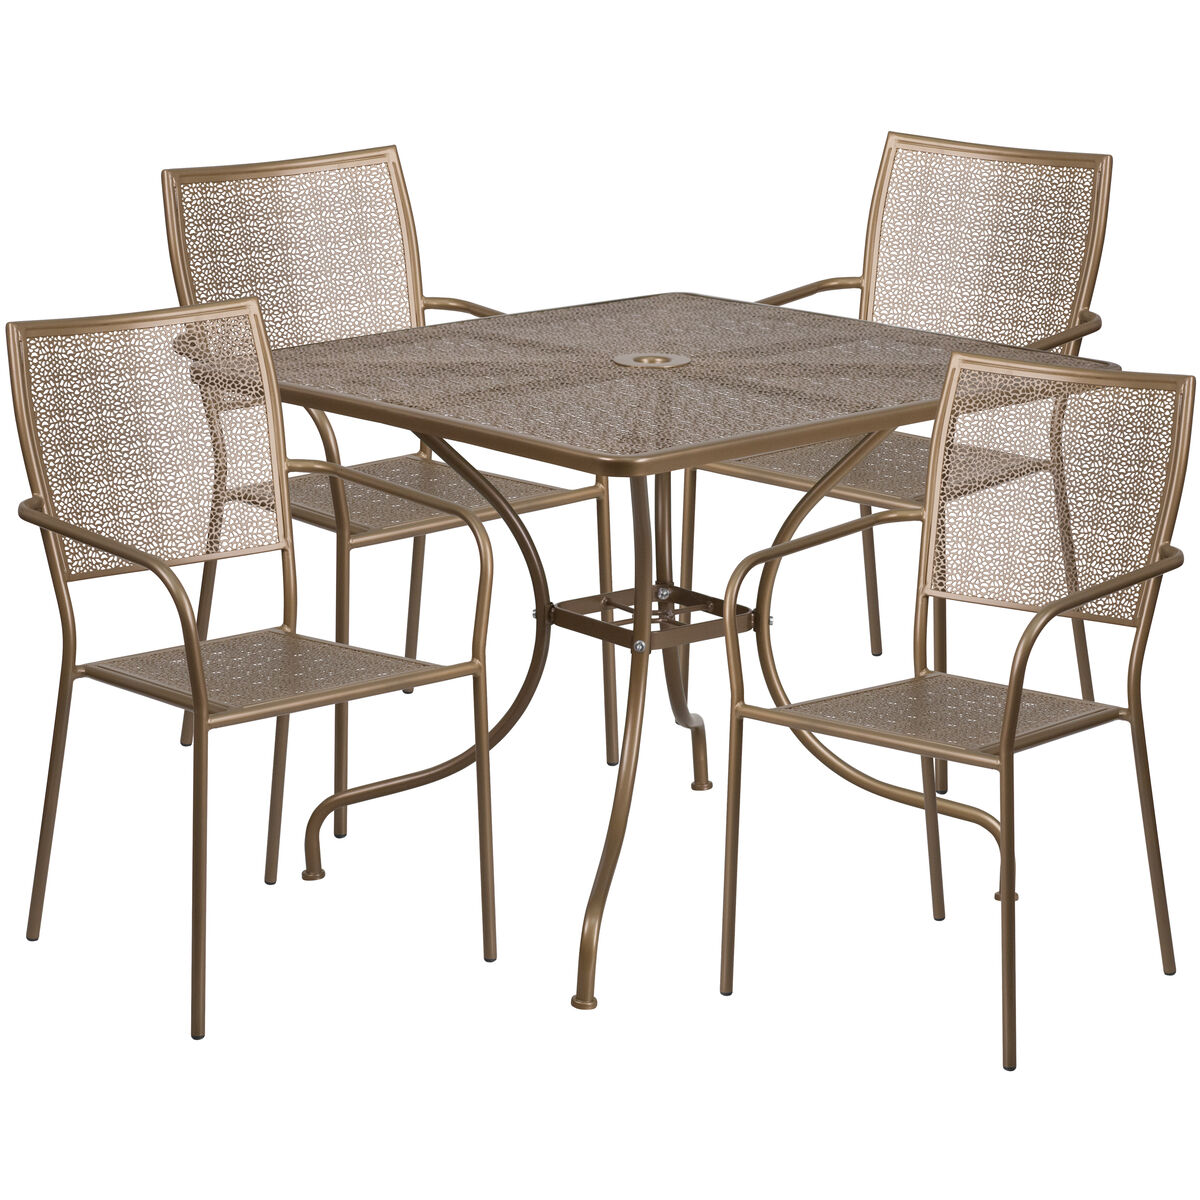 Furniture For Less Miami: Flash Furniture 35.5'' Square Gold Indoor-Outdoor Steel